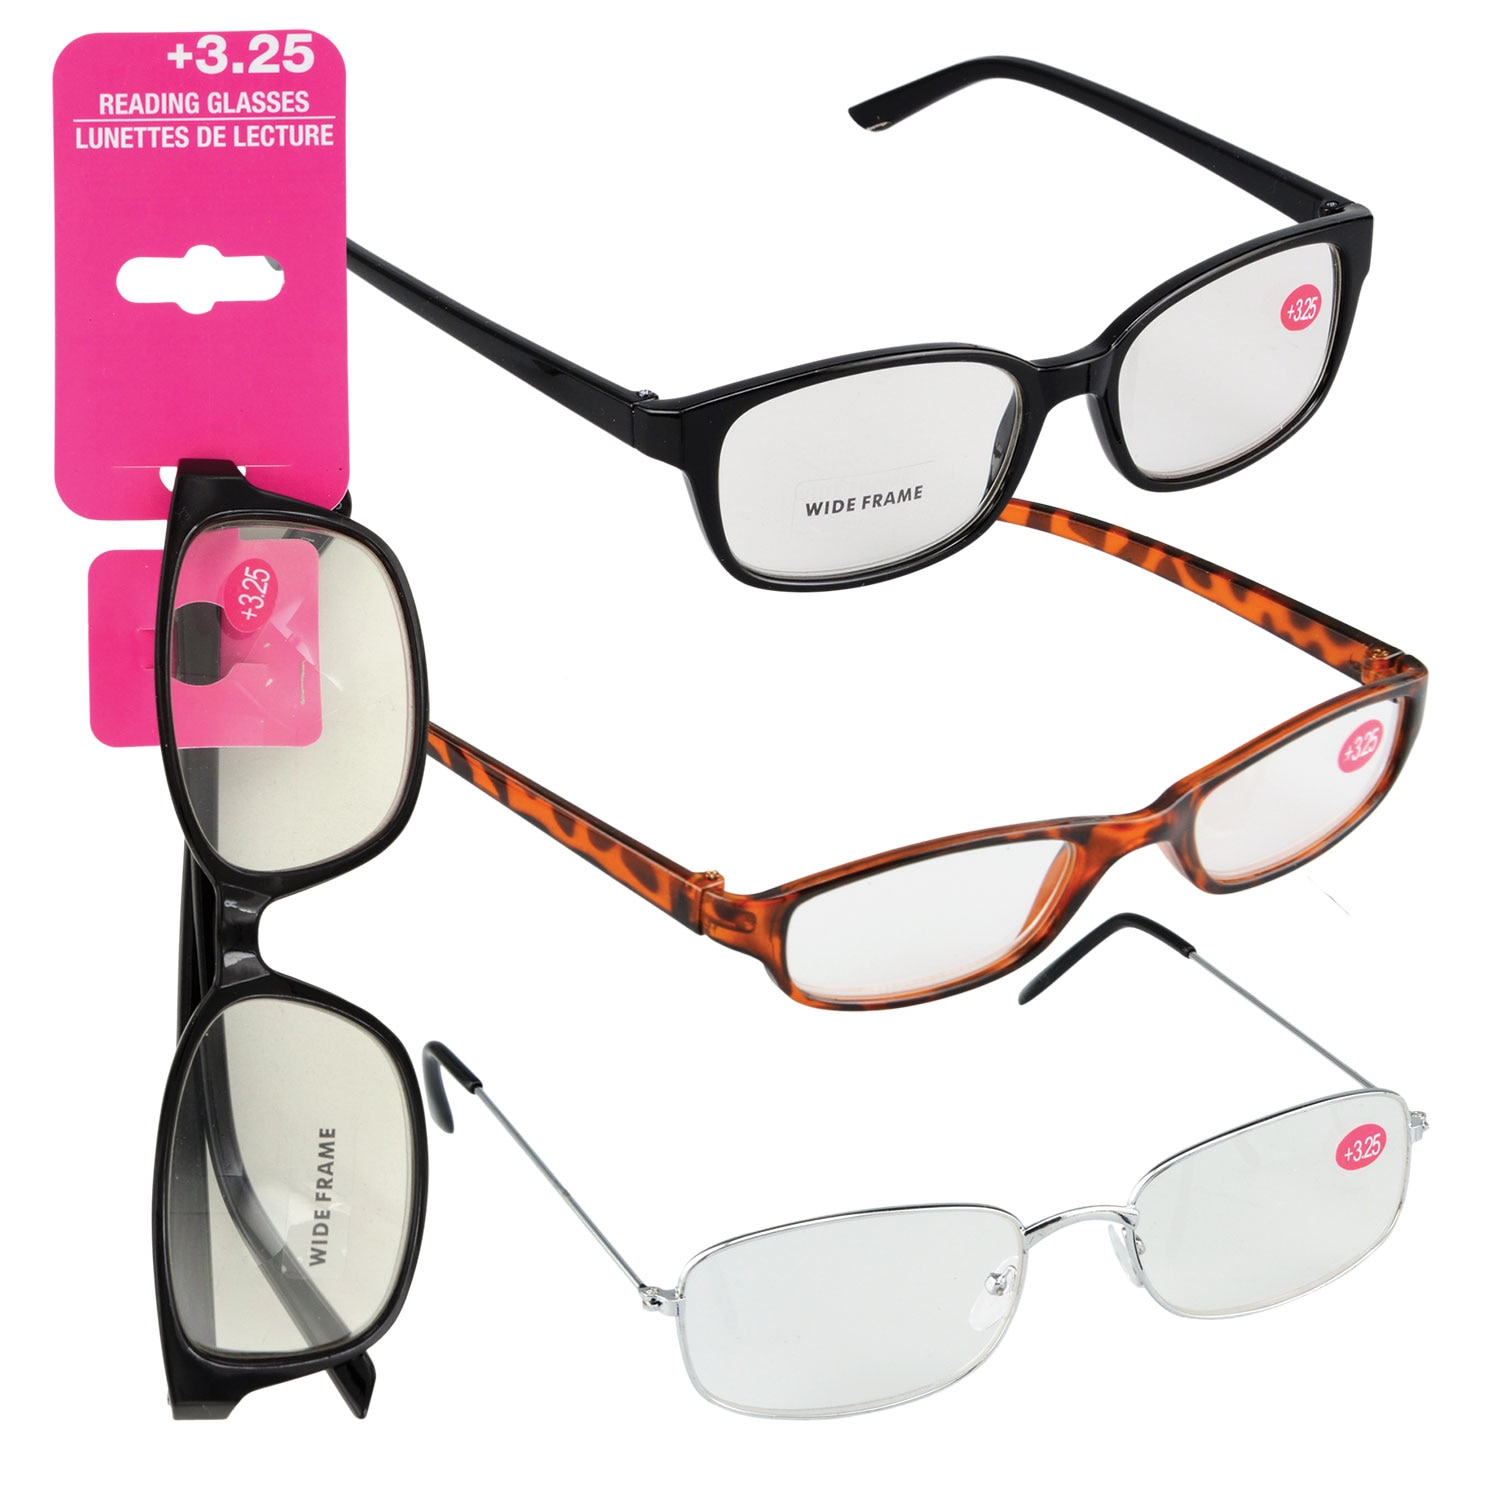 8129791cbf86 Fashion Reading Glasses with +3.25 Diopters